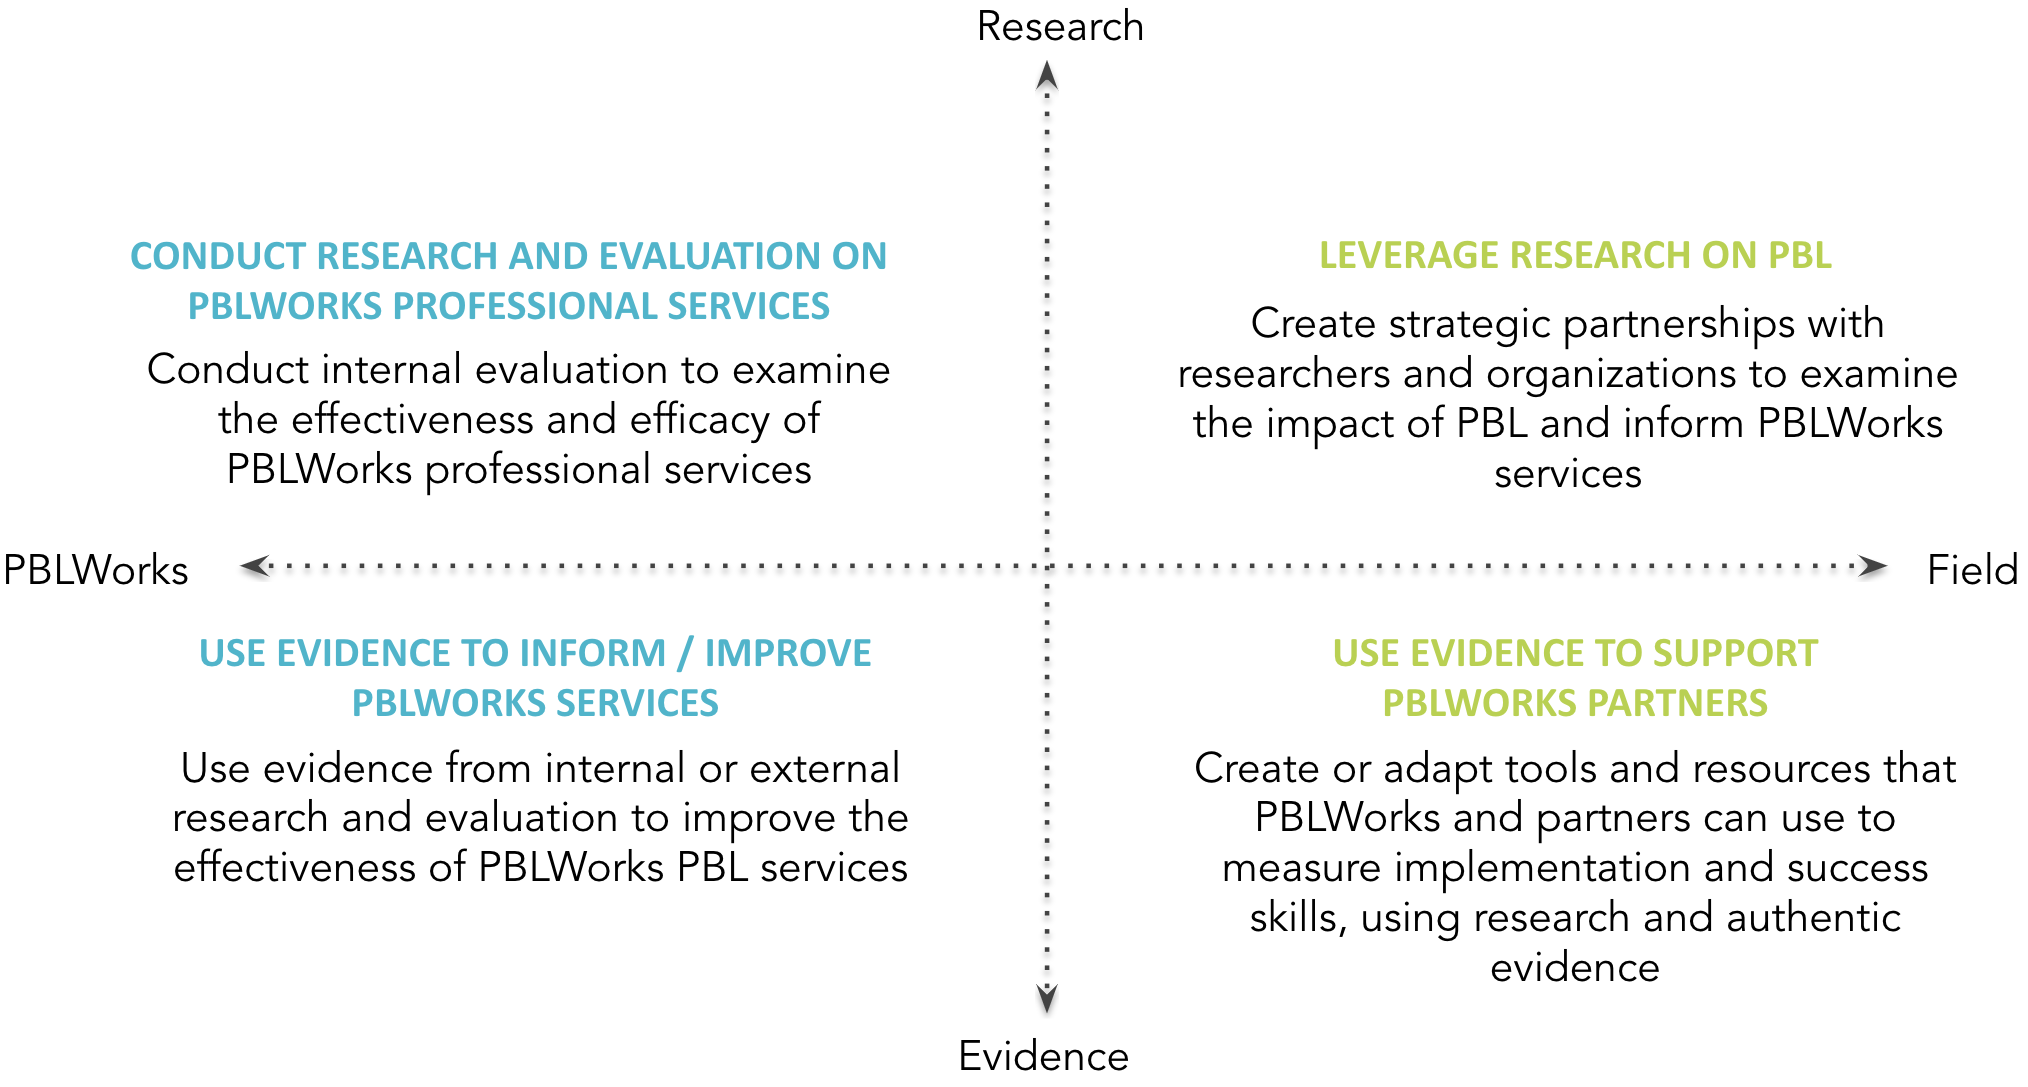 Research and Evidence Sandbox